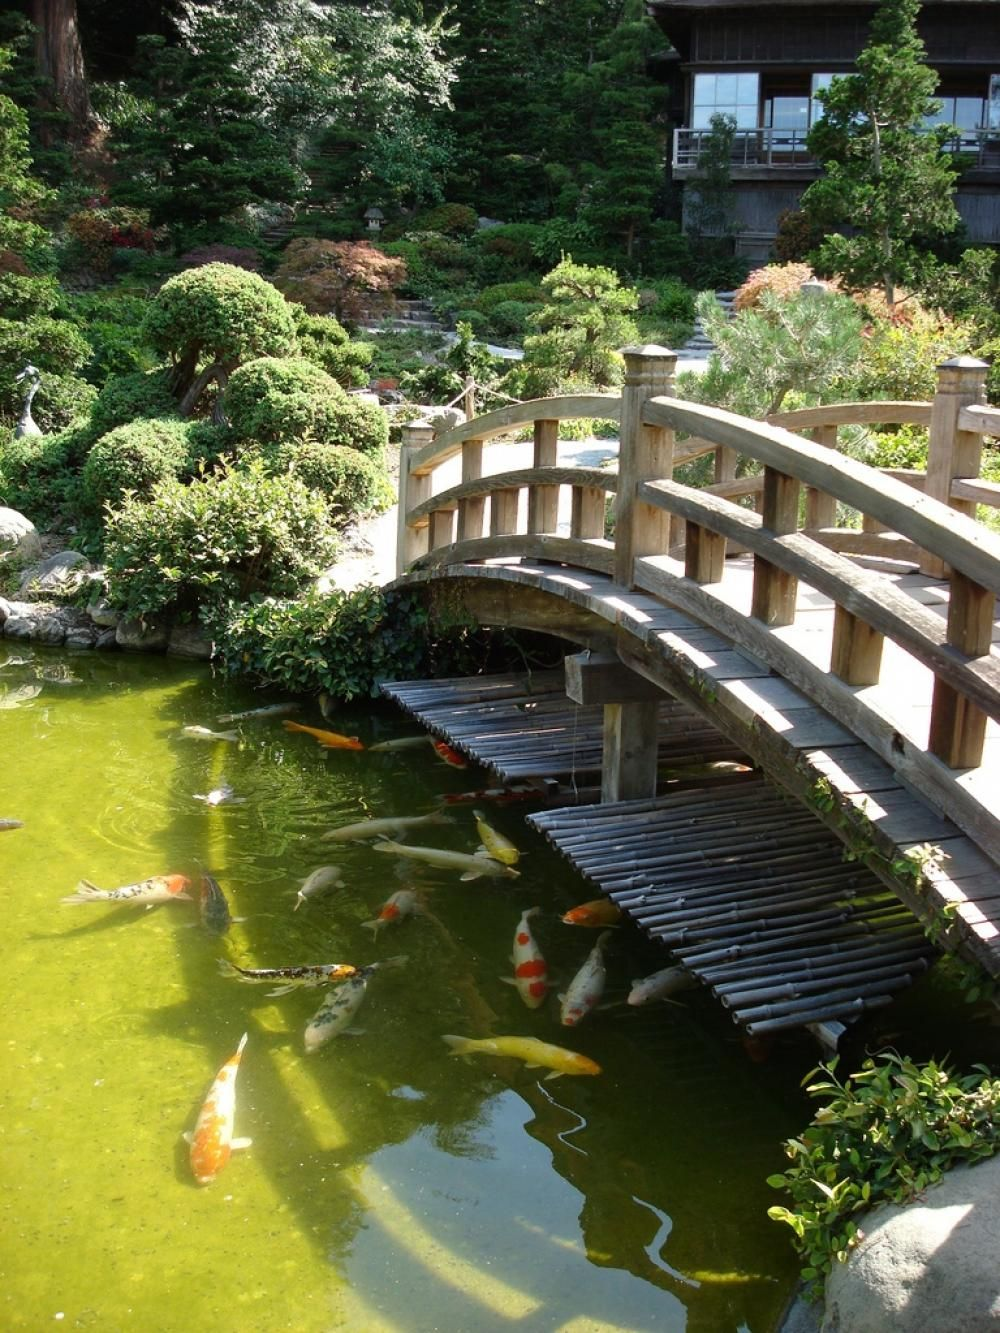 Gardening large koi pond with bridge in japanese garden for Japanese garden san jose koi fish